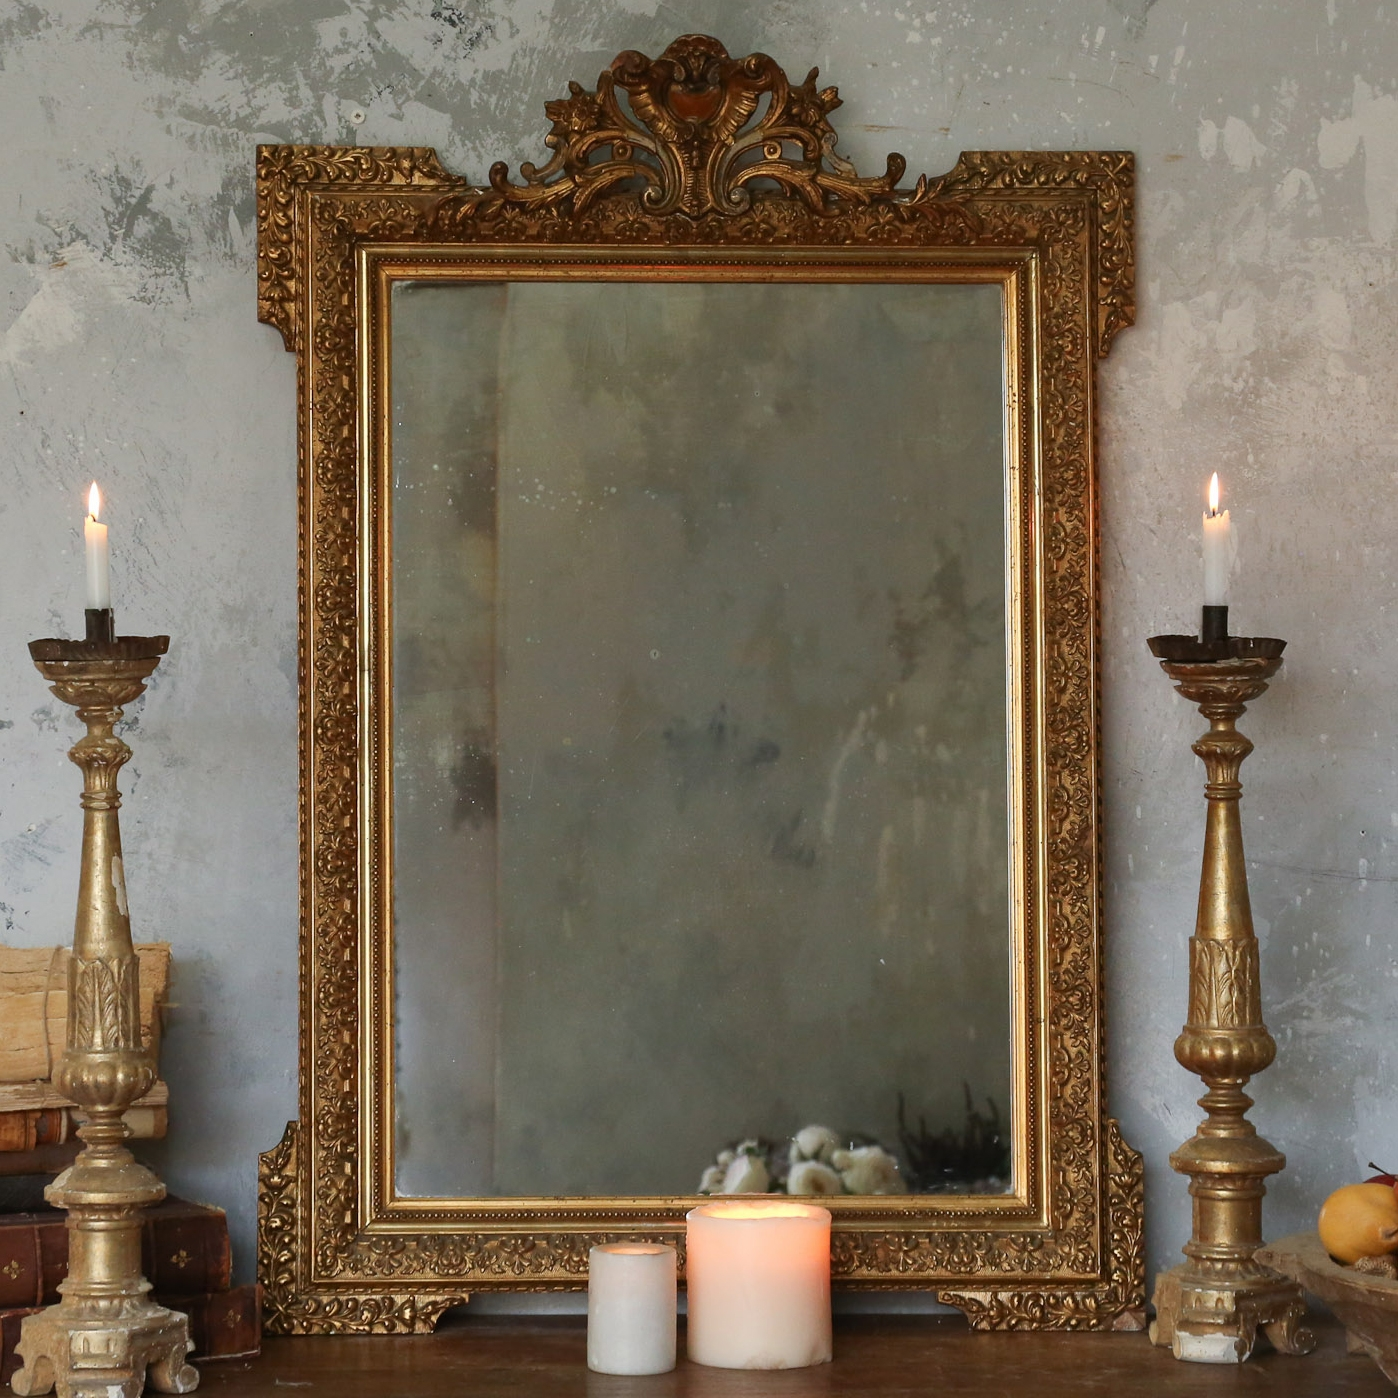 Mirror Ideas About Old Mirrors On Pinterest Vintage Antique For With Regard To Vintage Mirror For Sale (View 10 of 15)